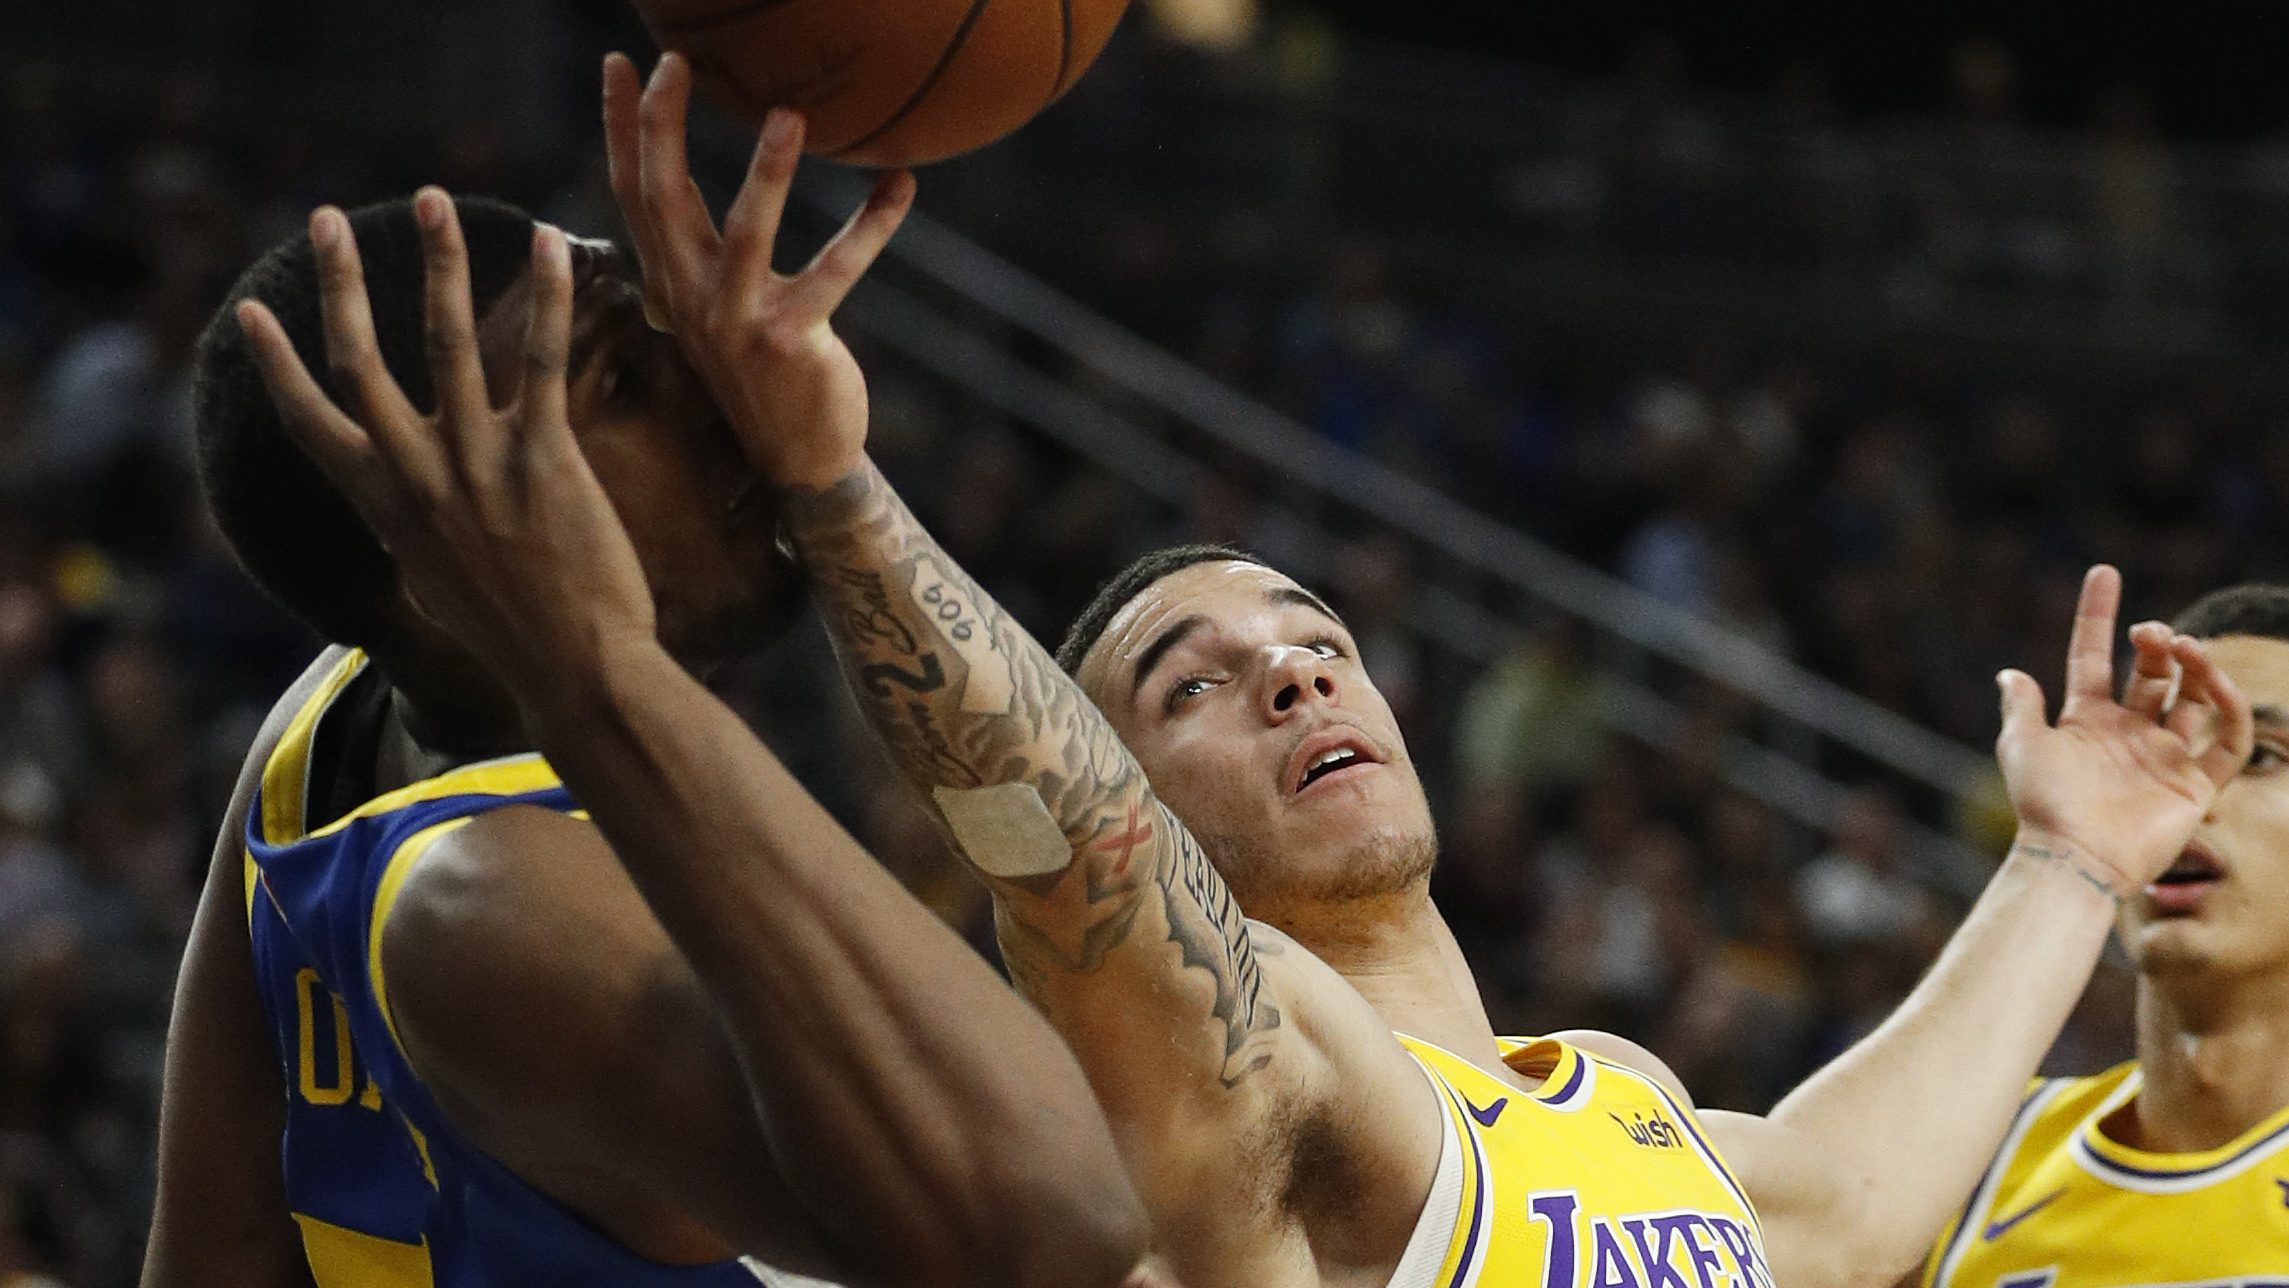 Lonzo Ball Has To Cover Up Big Baller Brand Tattoo During Nba Games Probasketballtalk Nbc Sports